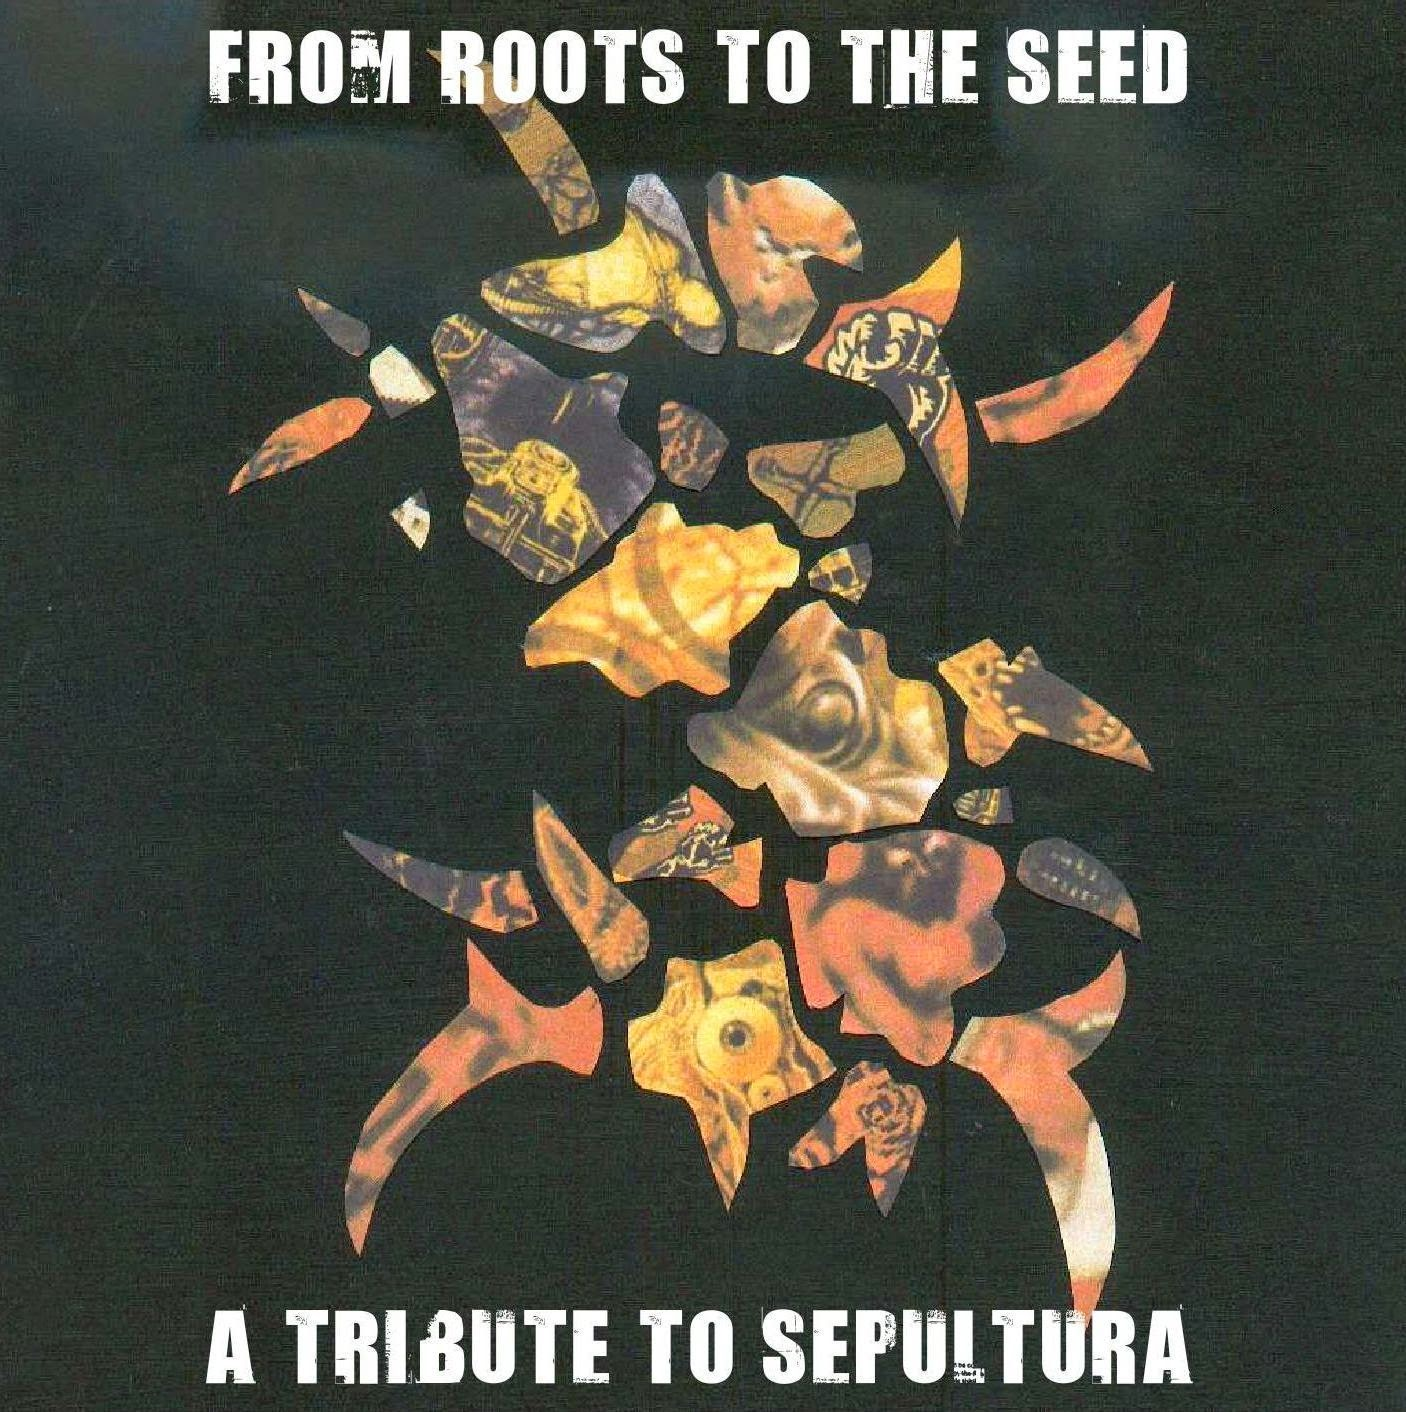 Msica libertad del alma dd discografa sepultura 320 kbps mega 2008 from roots to the seed a tribute to sepultura thecheapjerseys Choice Image